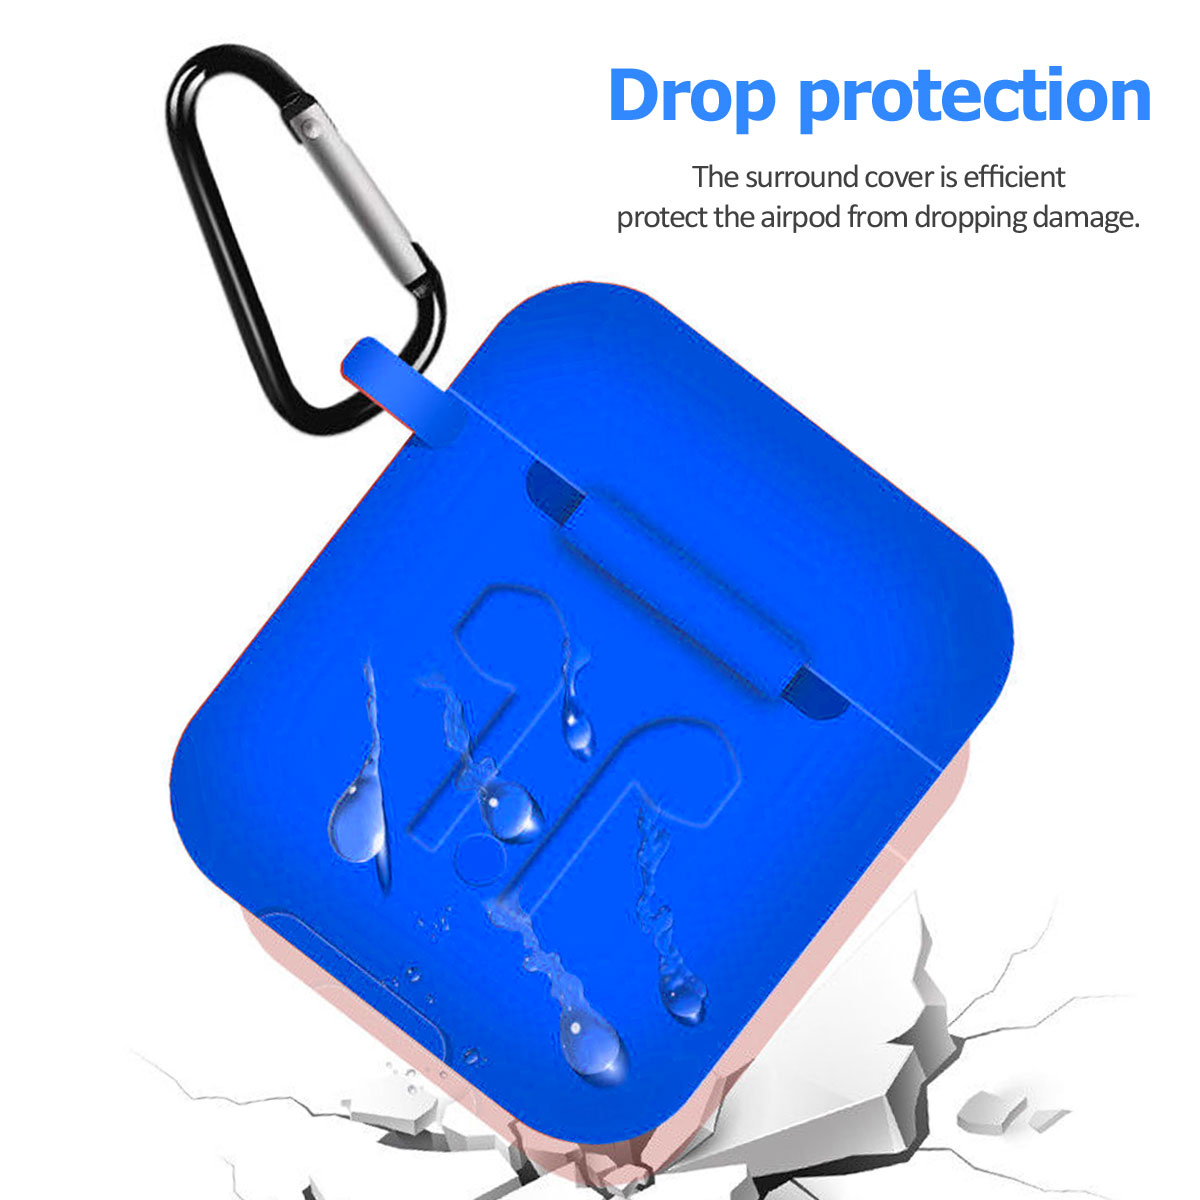 Silicone-Ruggged-Case-Cover-Earbuds-For-Apple-AirPods-2nd-Gen-Accessories-2019 thumbnail 35